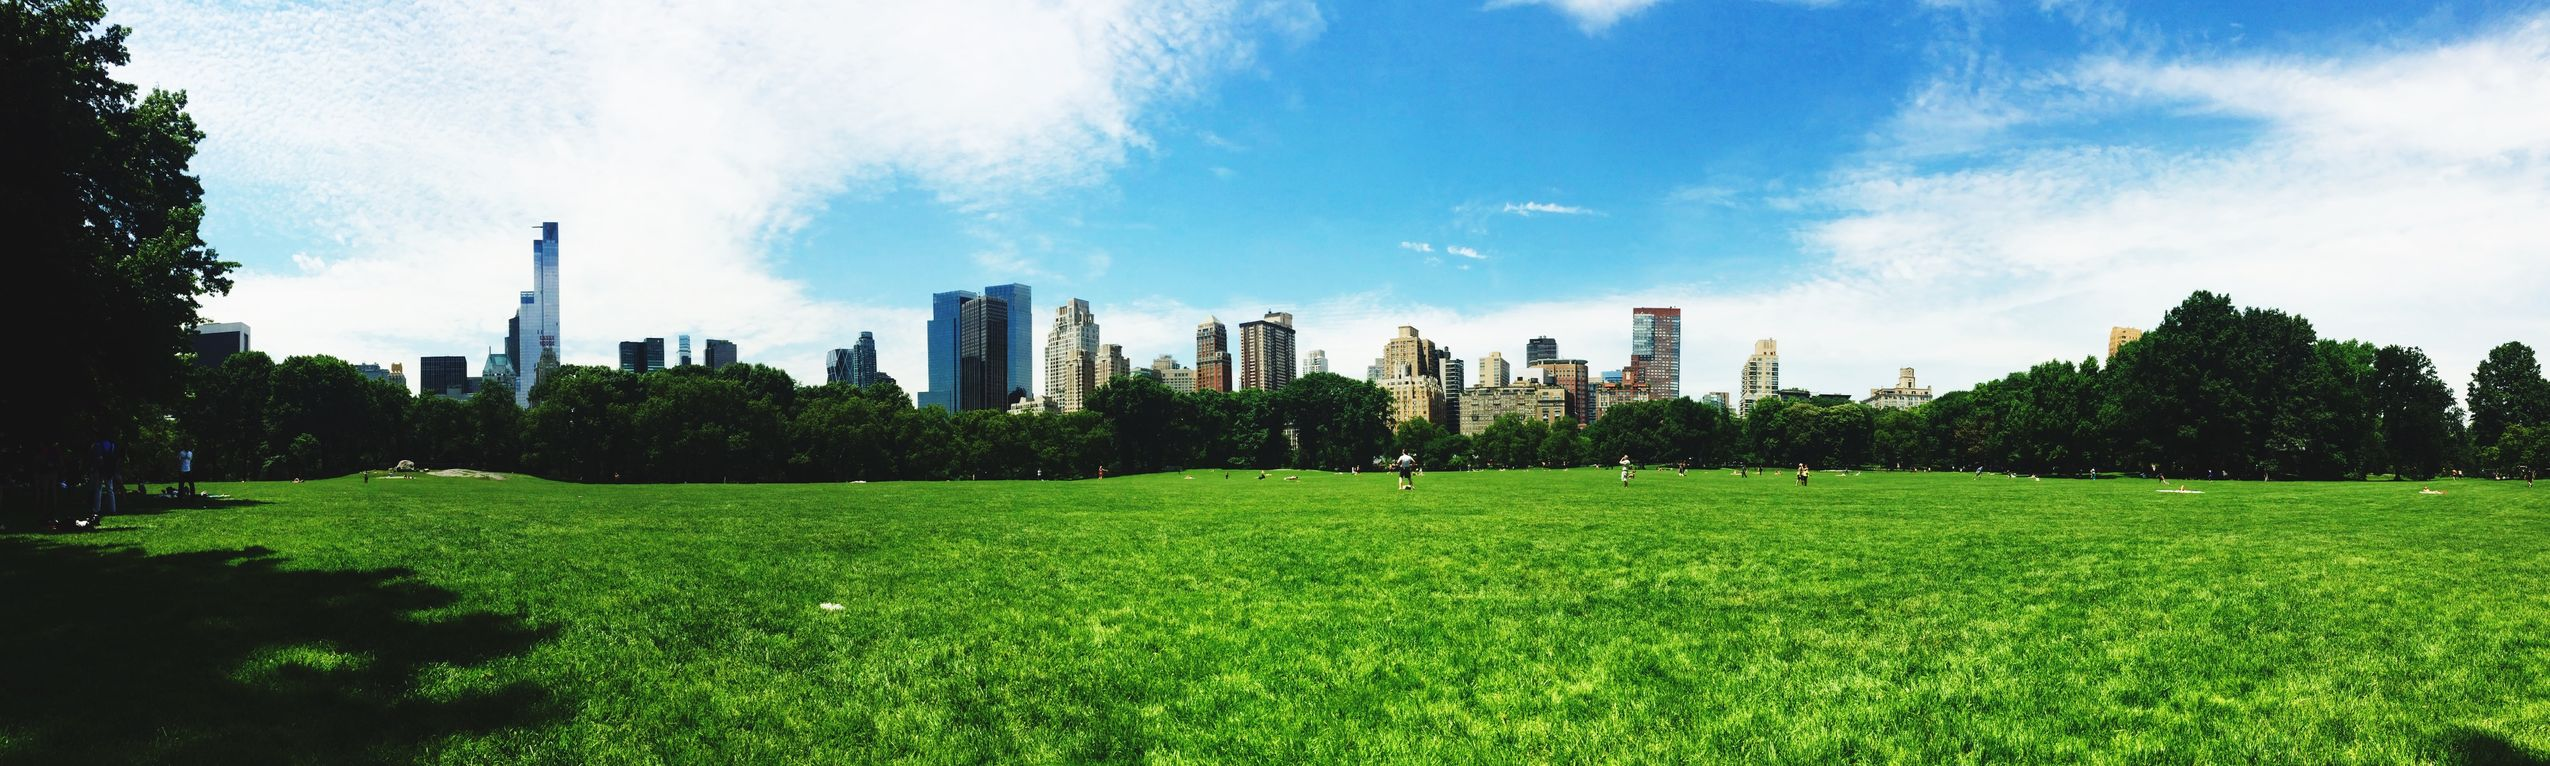 Central Park Green Newyork Picnic Grattacieli Sun And Clouds